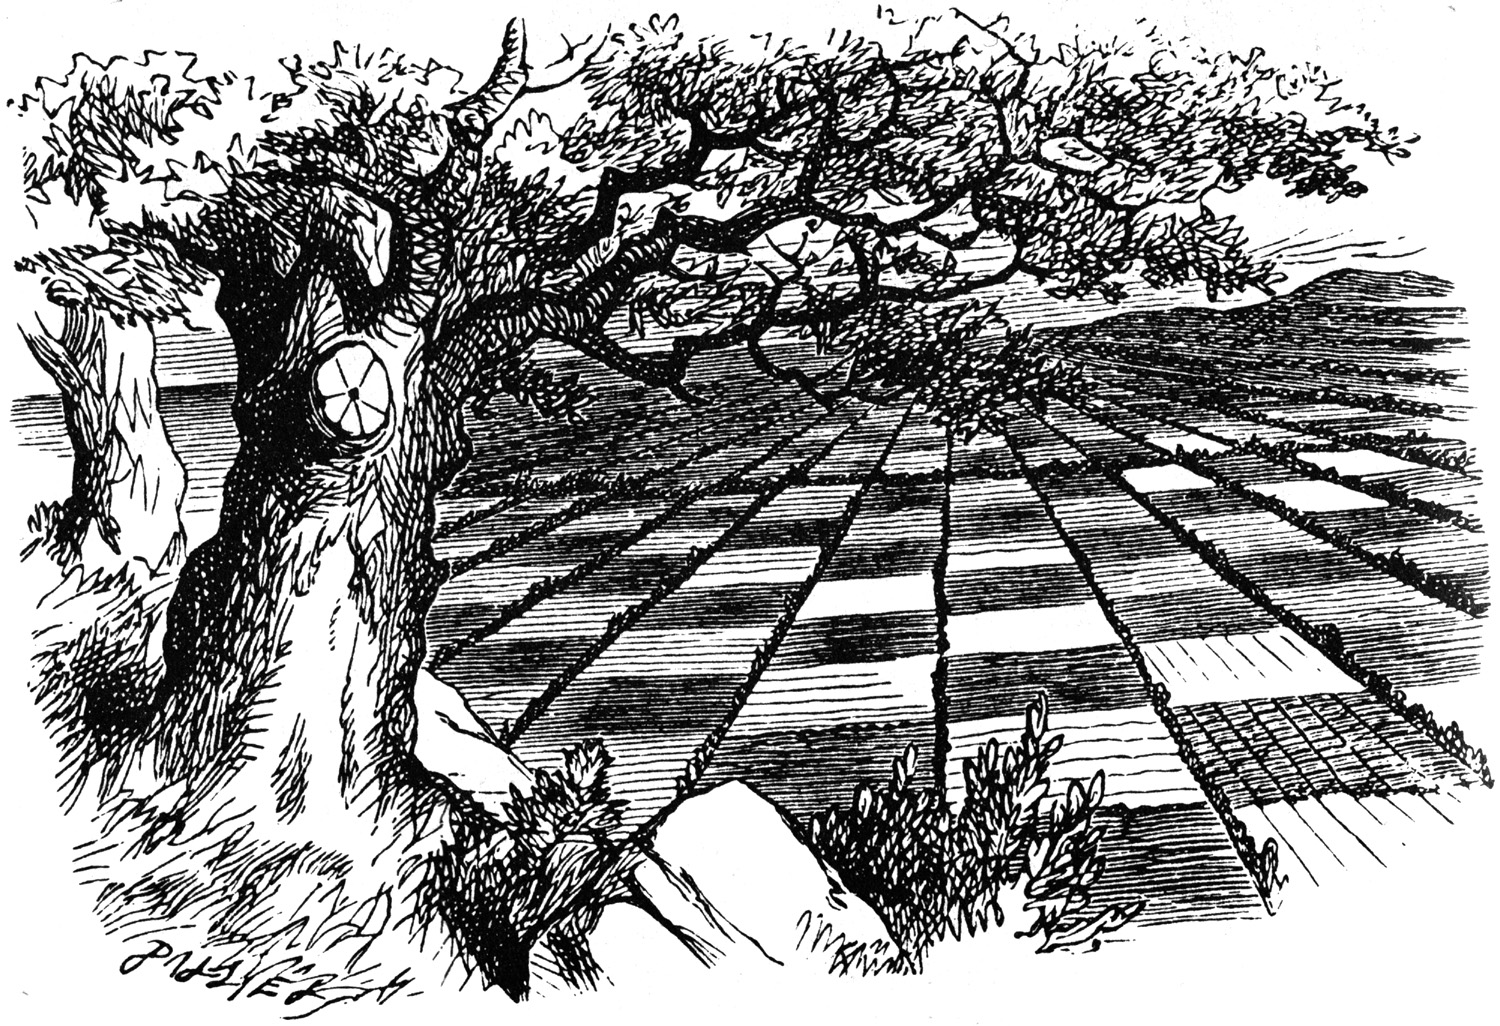 The chess field